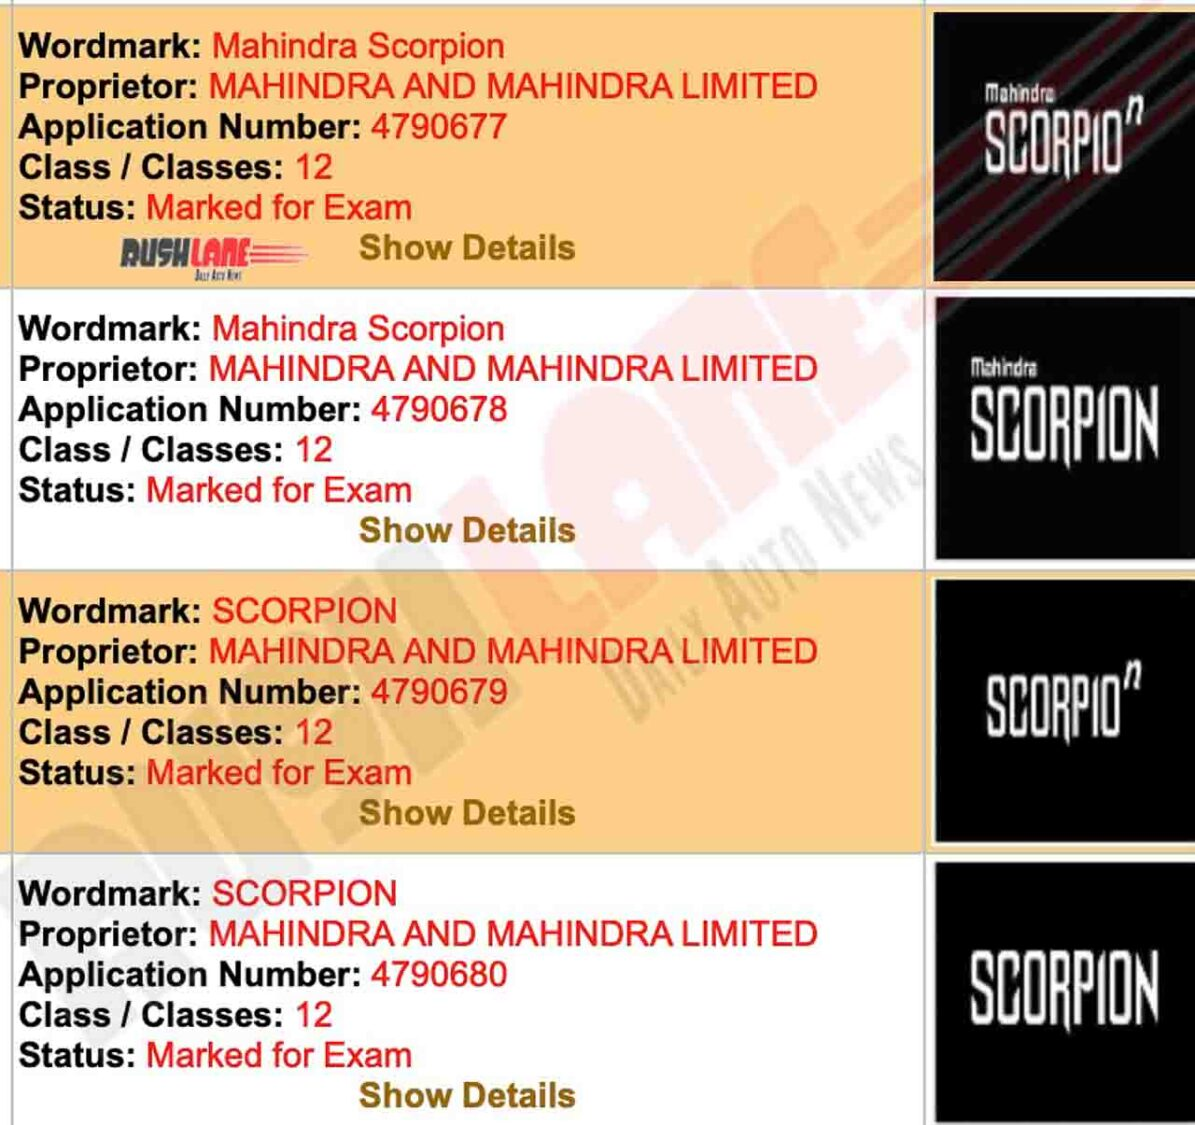 2021 Mahindra Scorpion name registered